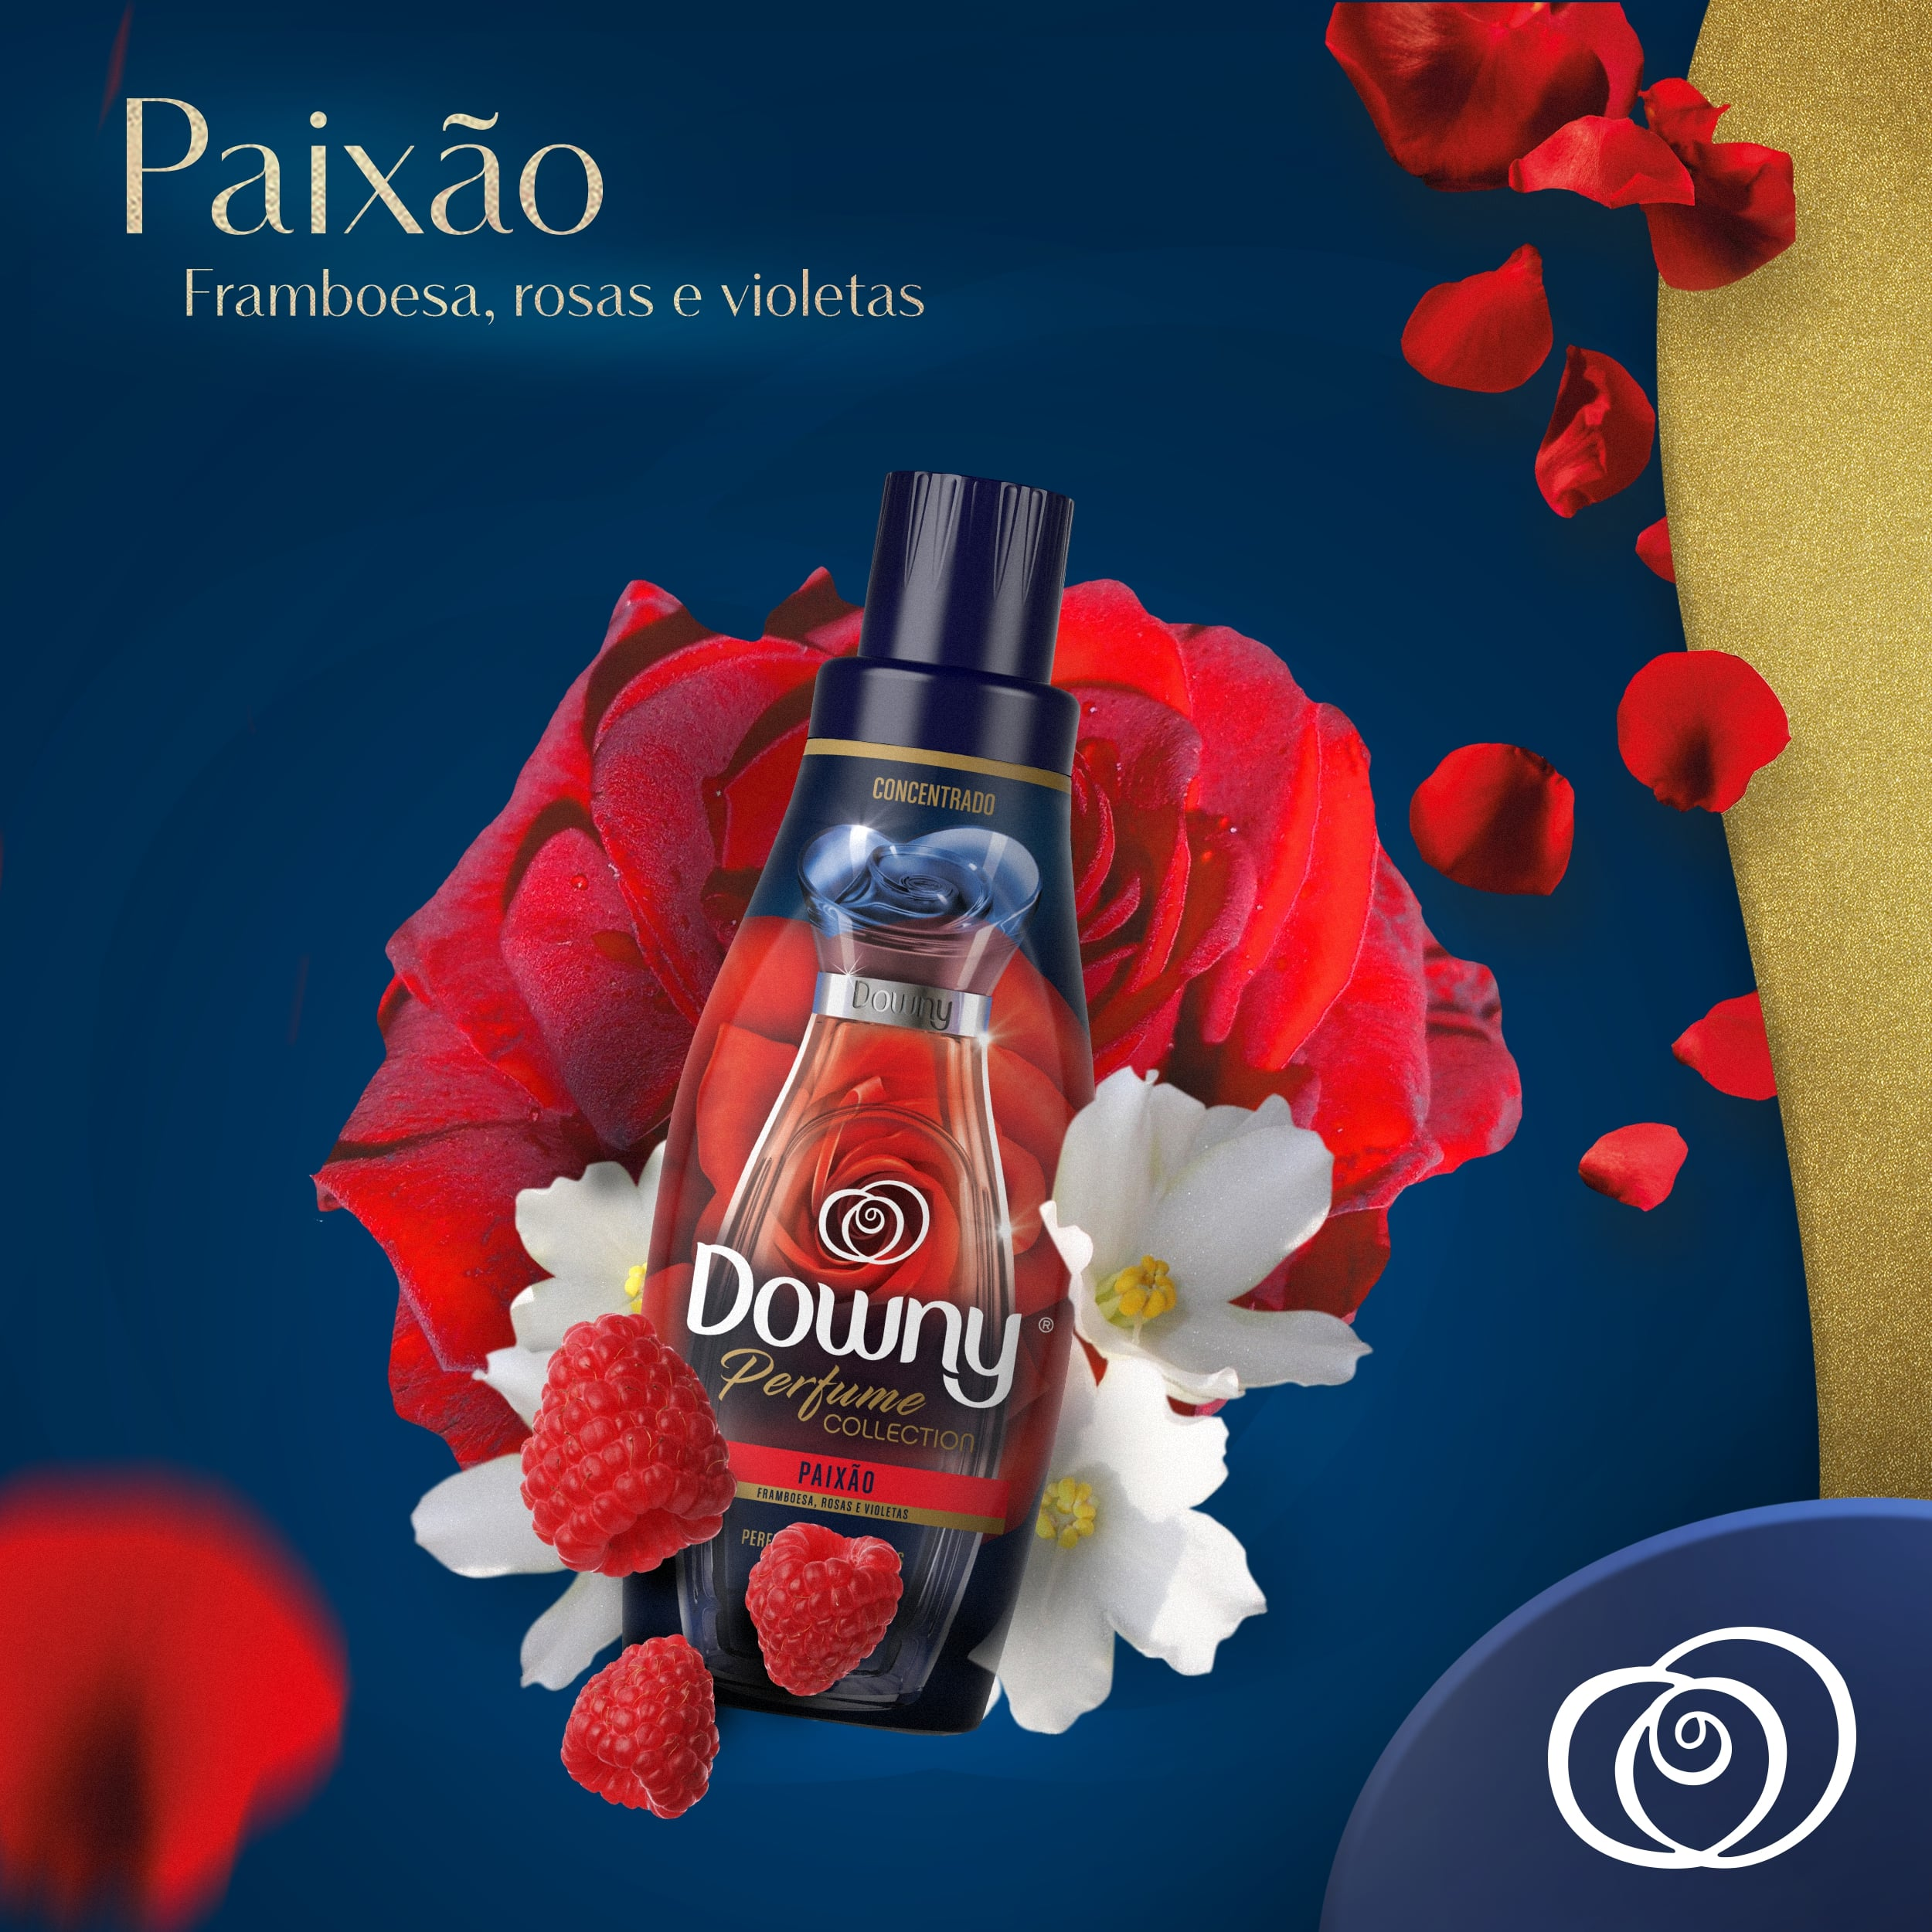 Amaciante Downy Perfume Collection Paixão Secondary 02